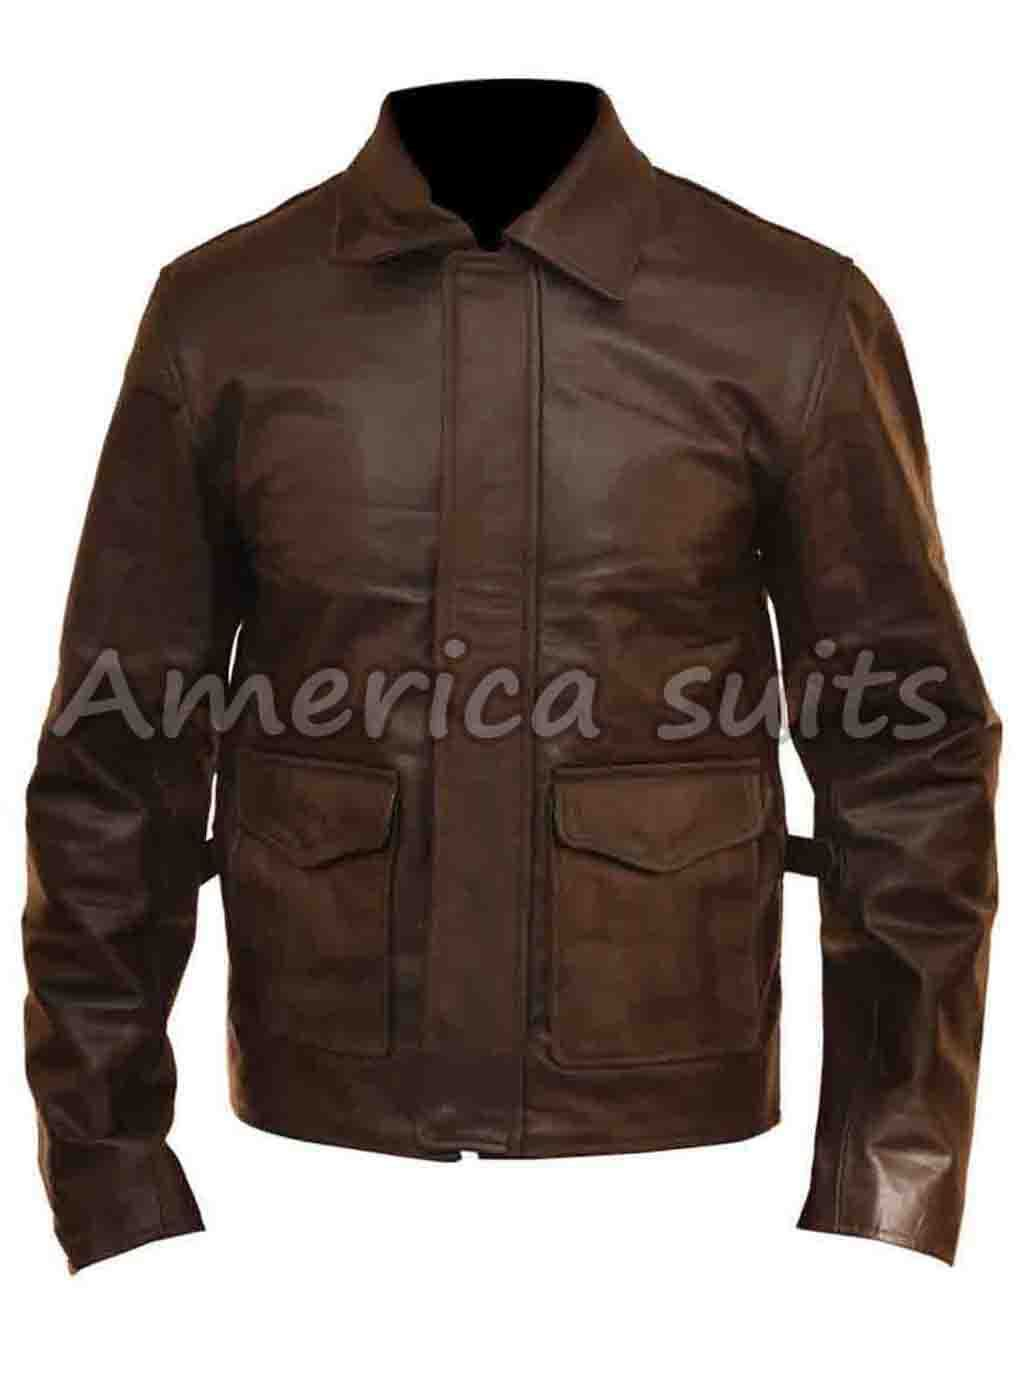 Leather jackets for men on sale